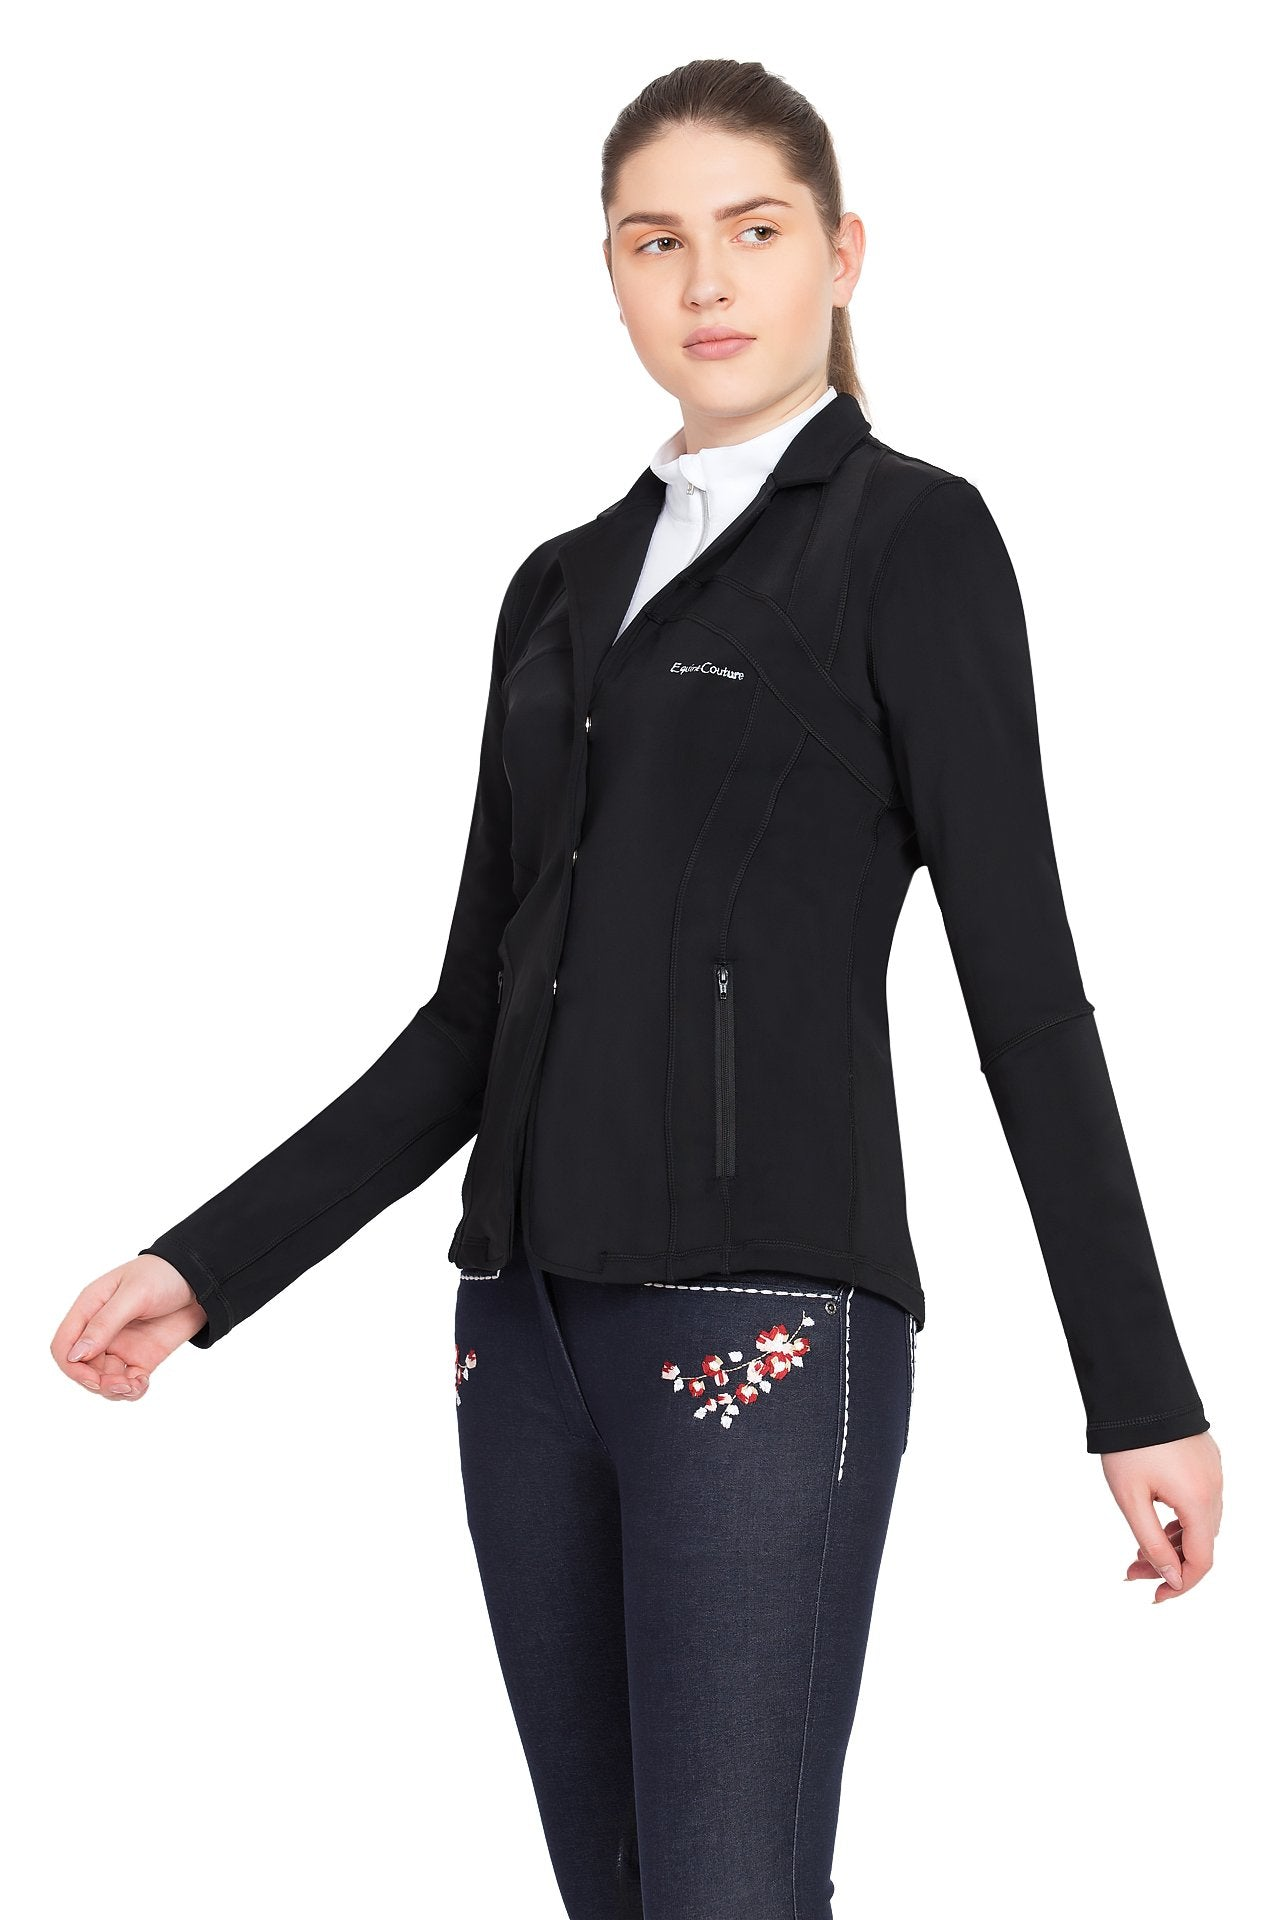 Lacey Ultra Light Show Coat - Equine Couture - Breeches.com